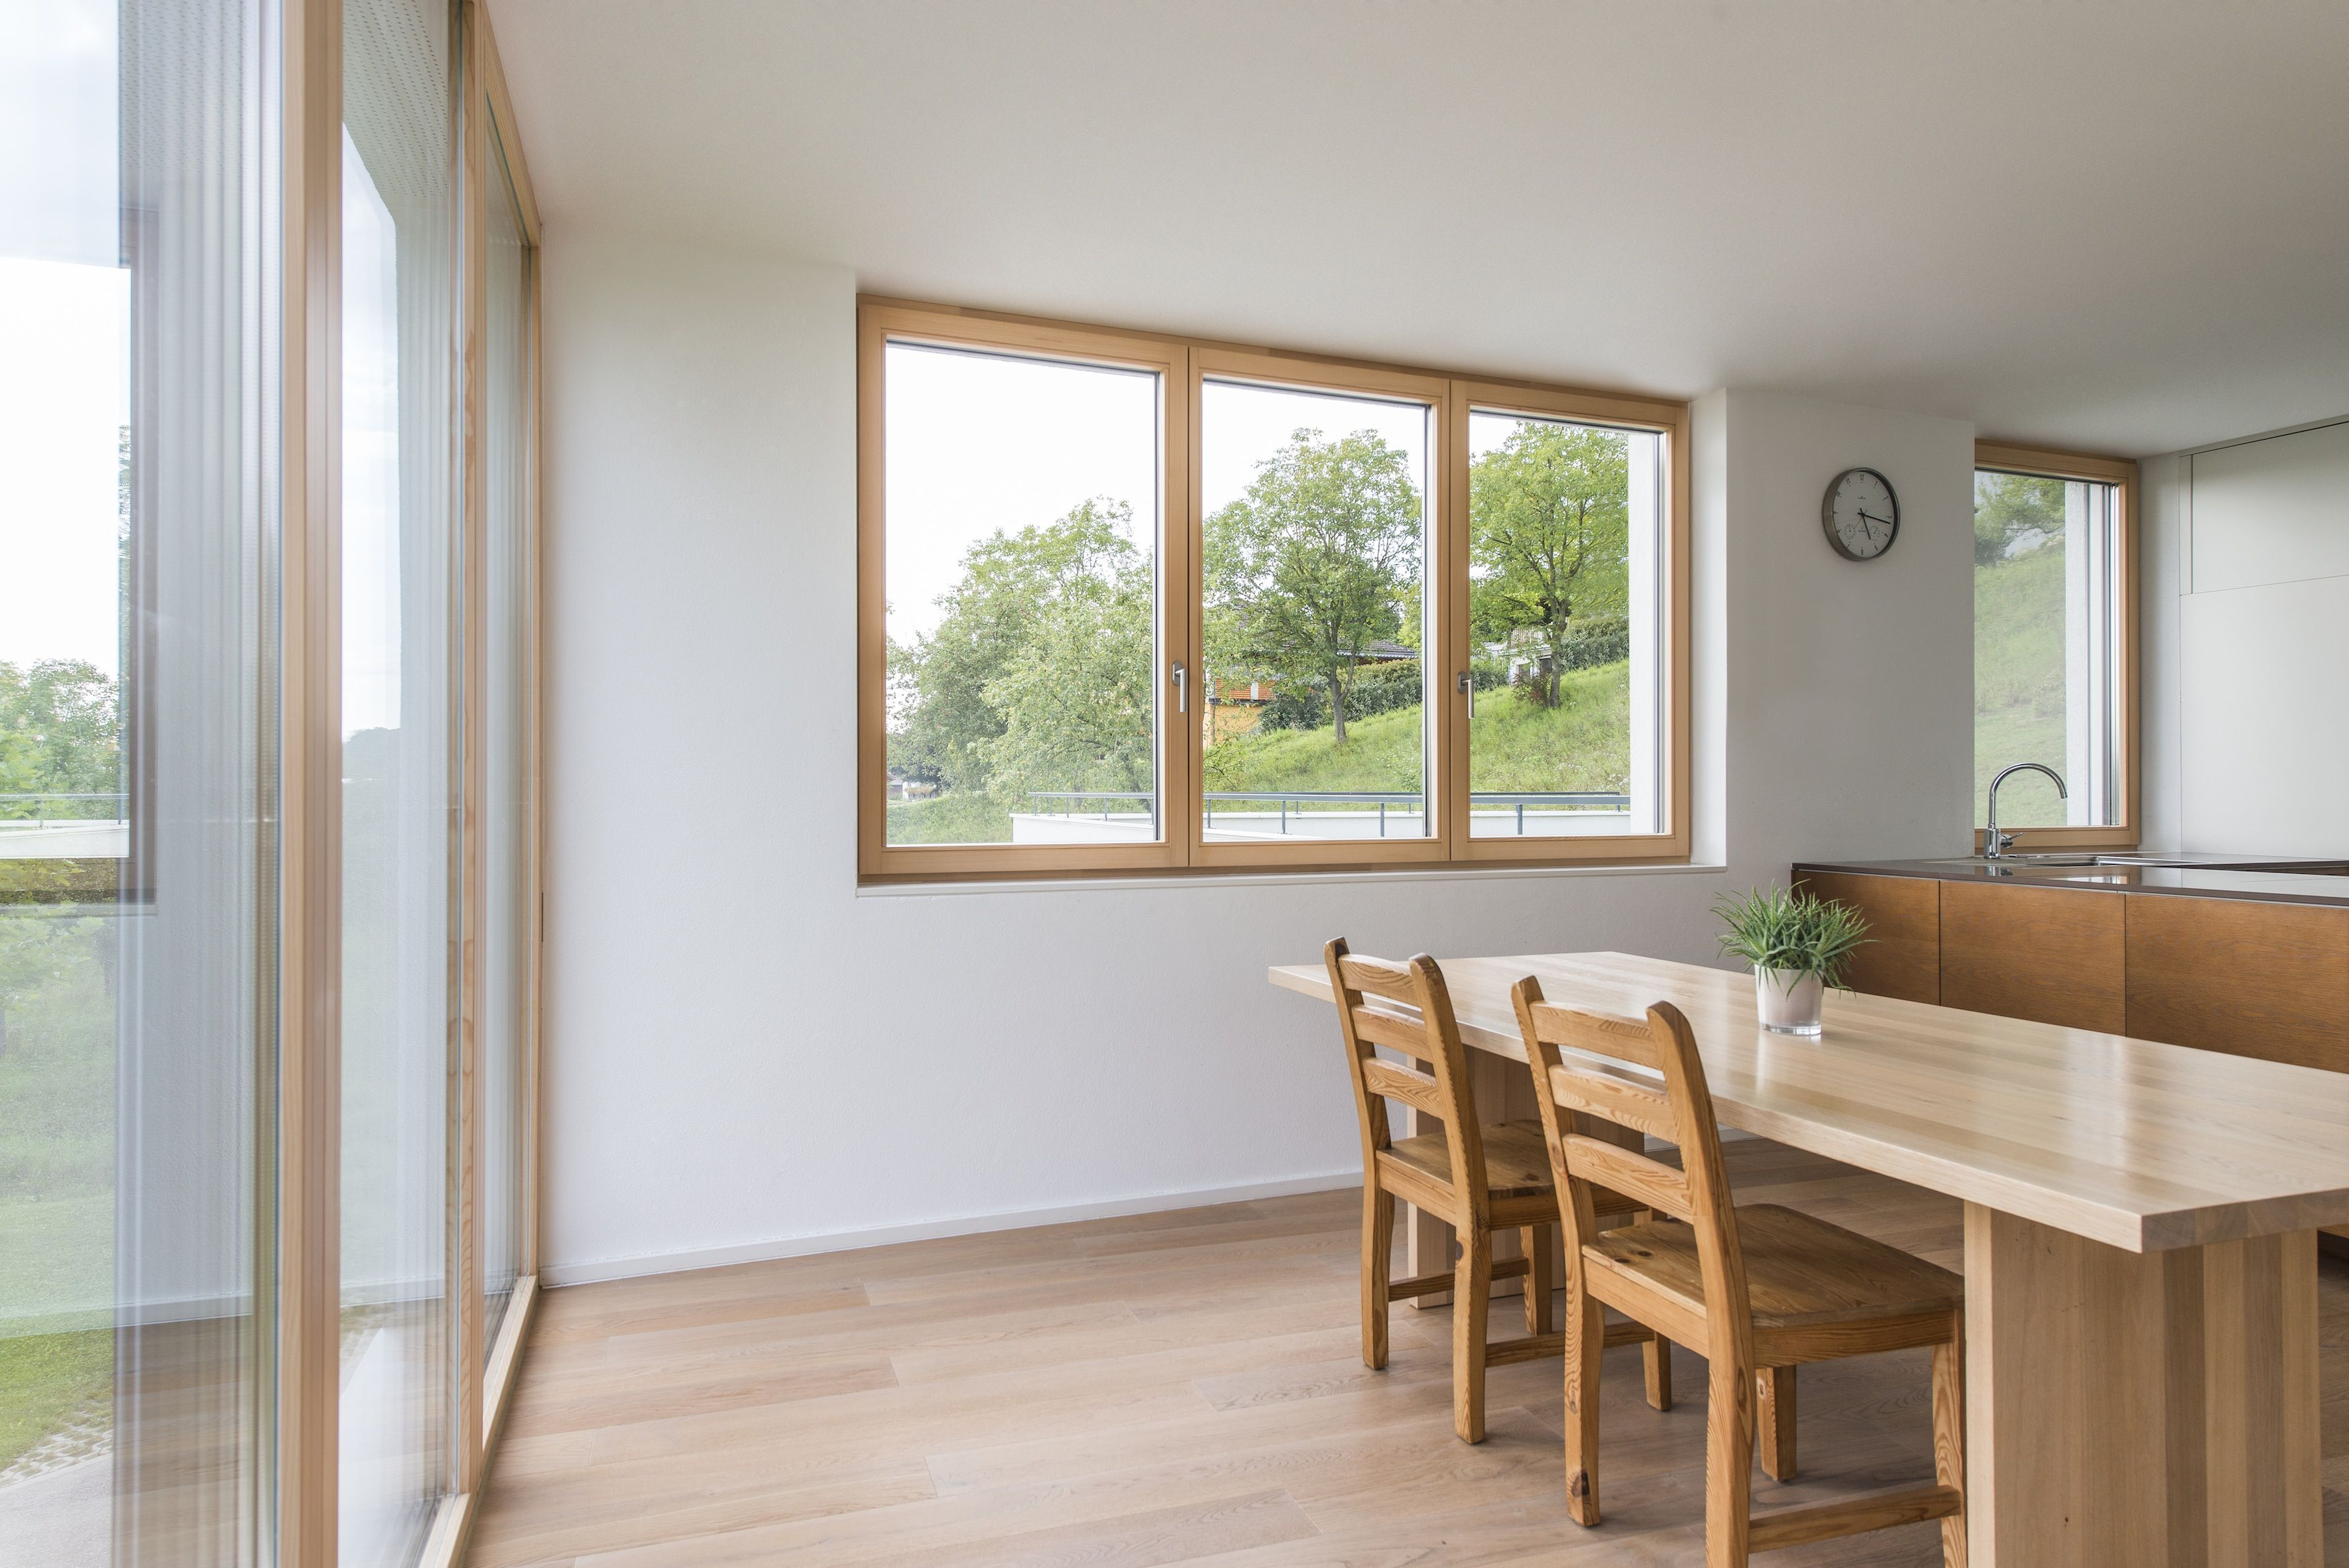 Holzdielen Außen Dining Room With Timber Aluminium Windows From Internorm Fenster